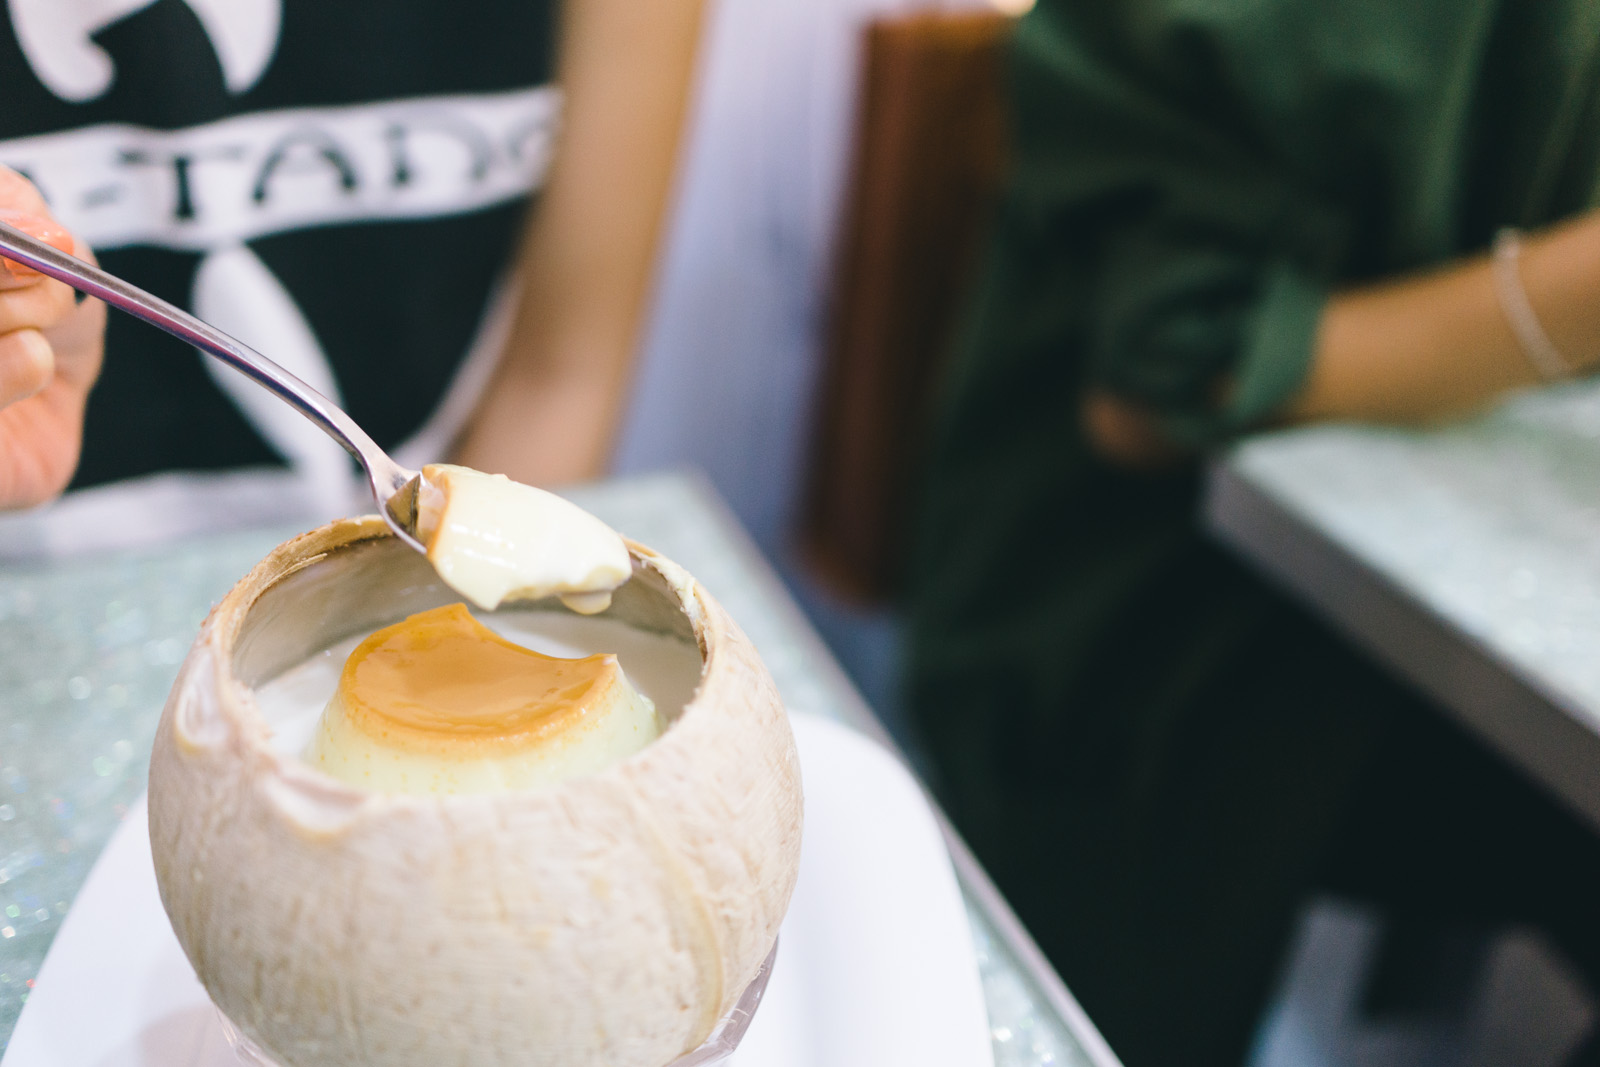 hong-kong-cray-10-local-late-night-dessert-spots-you-need-to-know-about-1